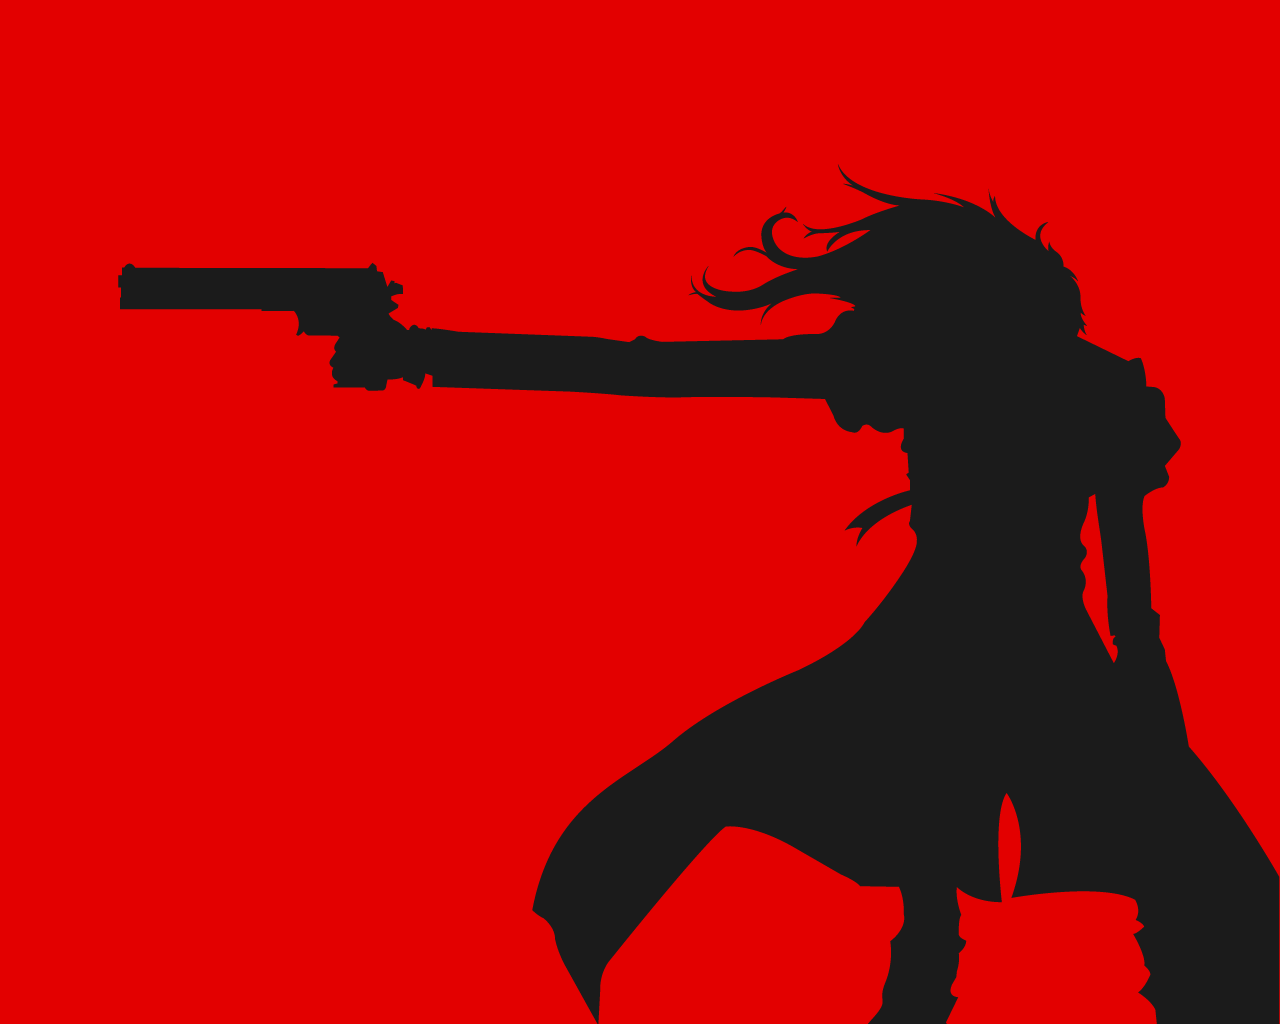 alucard-silhouette by nouseforaname